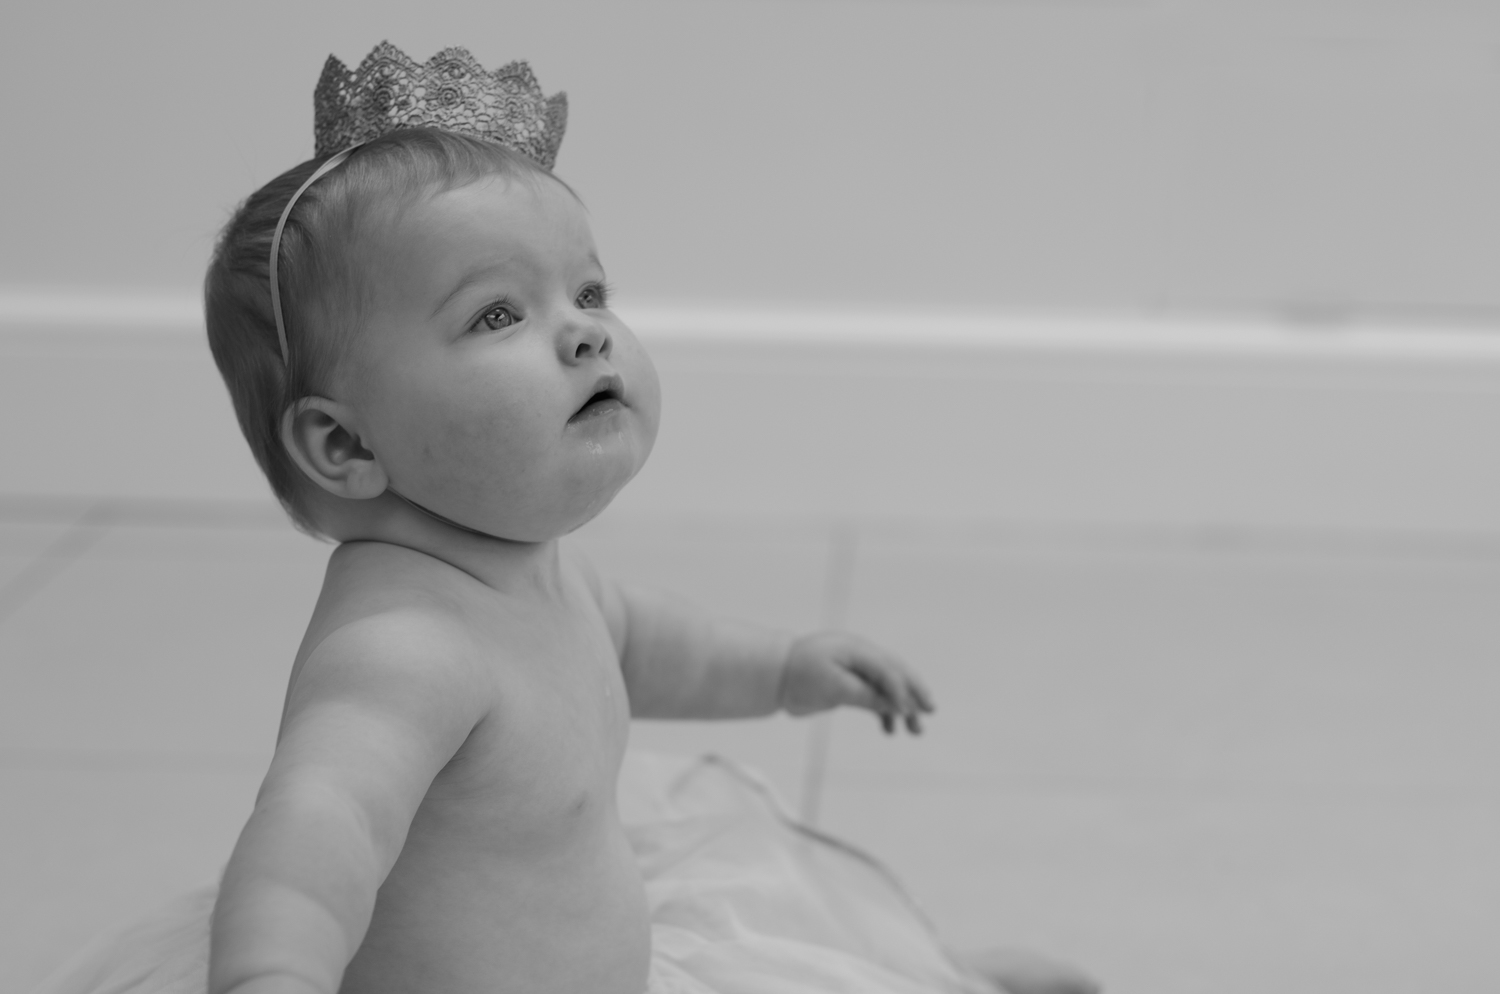 Photograph of baby in a shoot to celebrate 1st birthday, by photographer Evie Winter